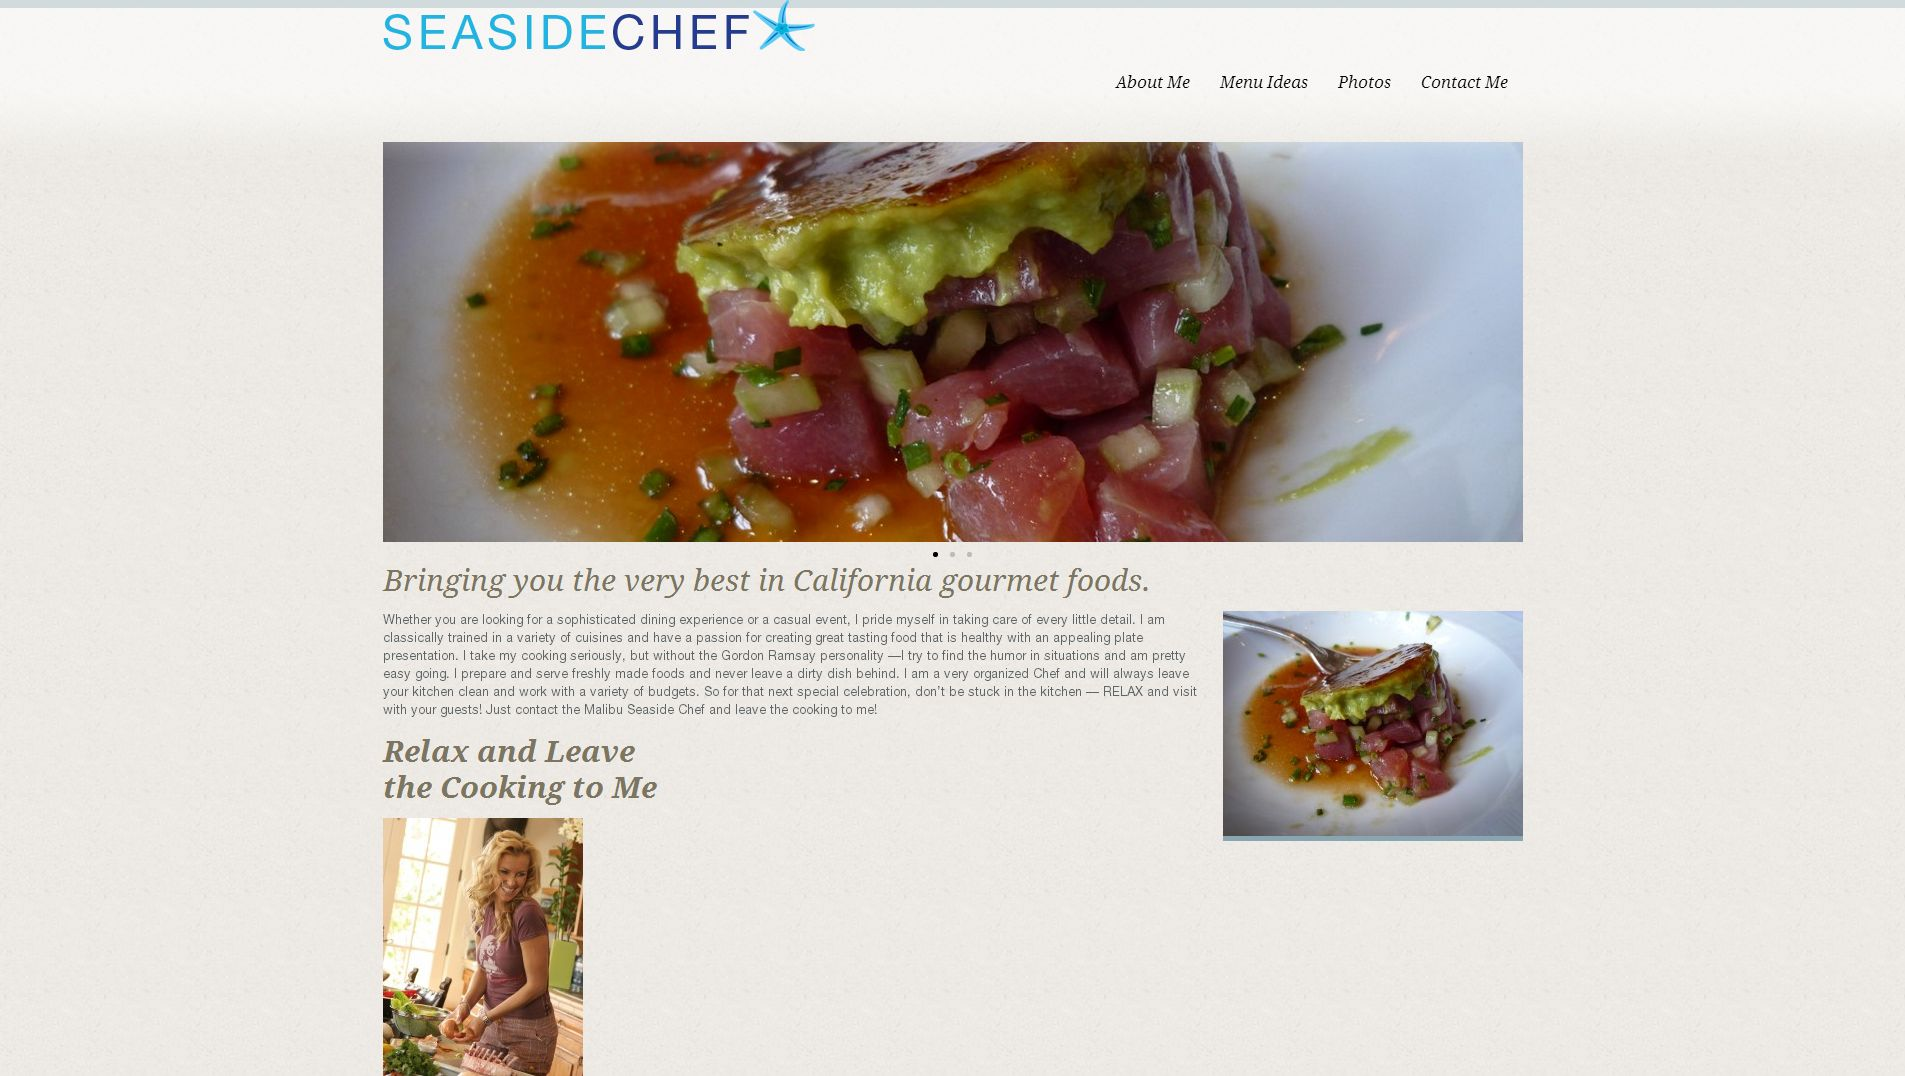 malibu seaside chef website